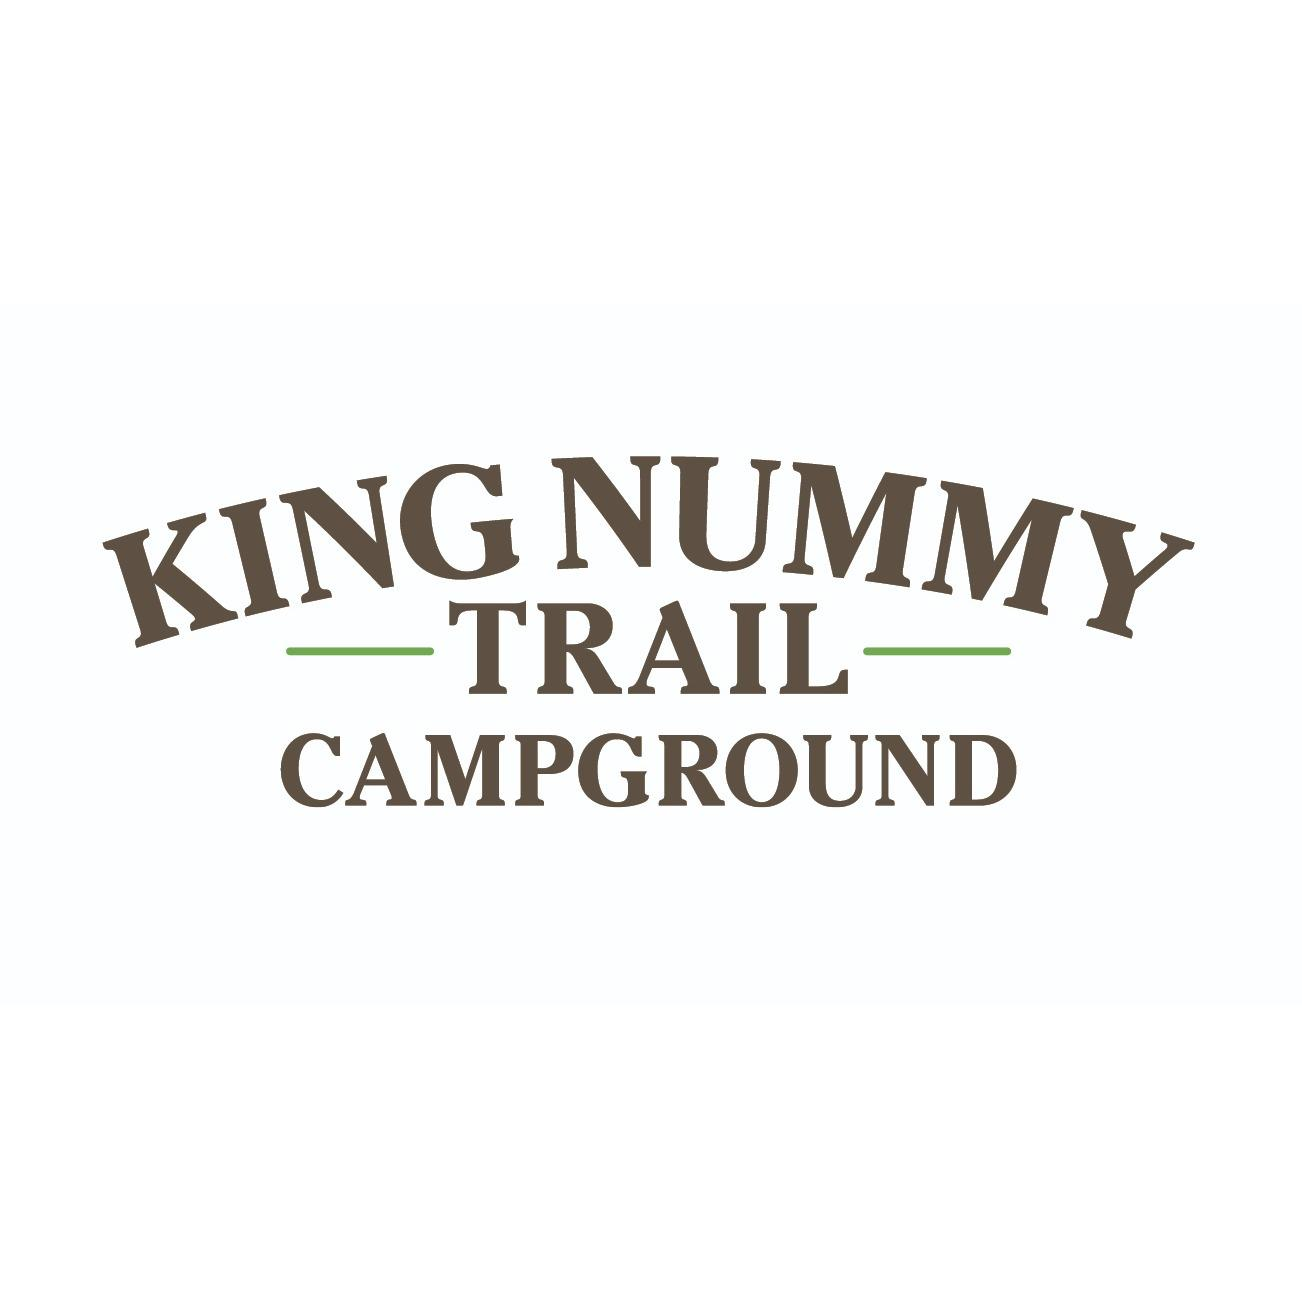 King Nummy Trail Campground